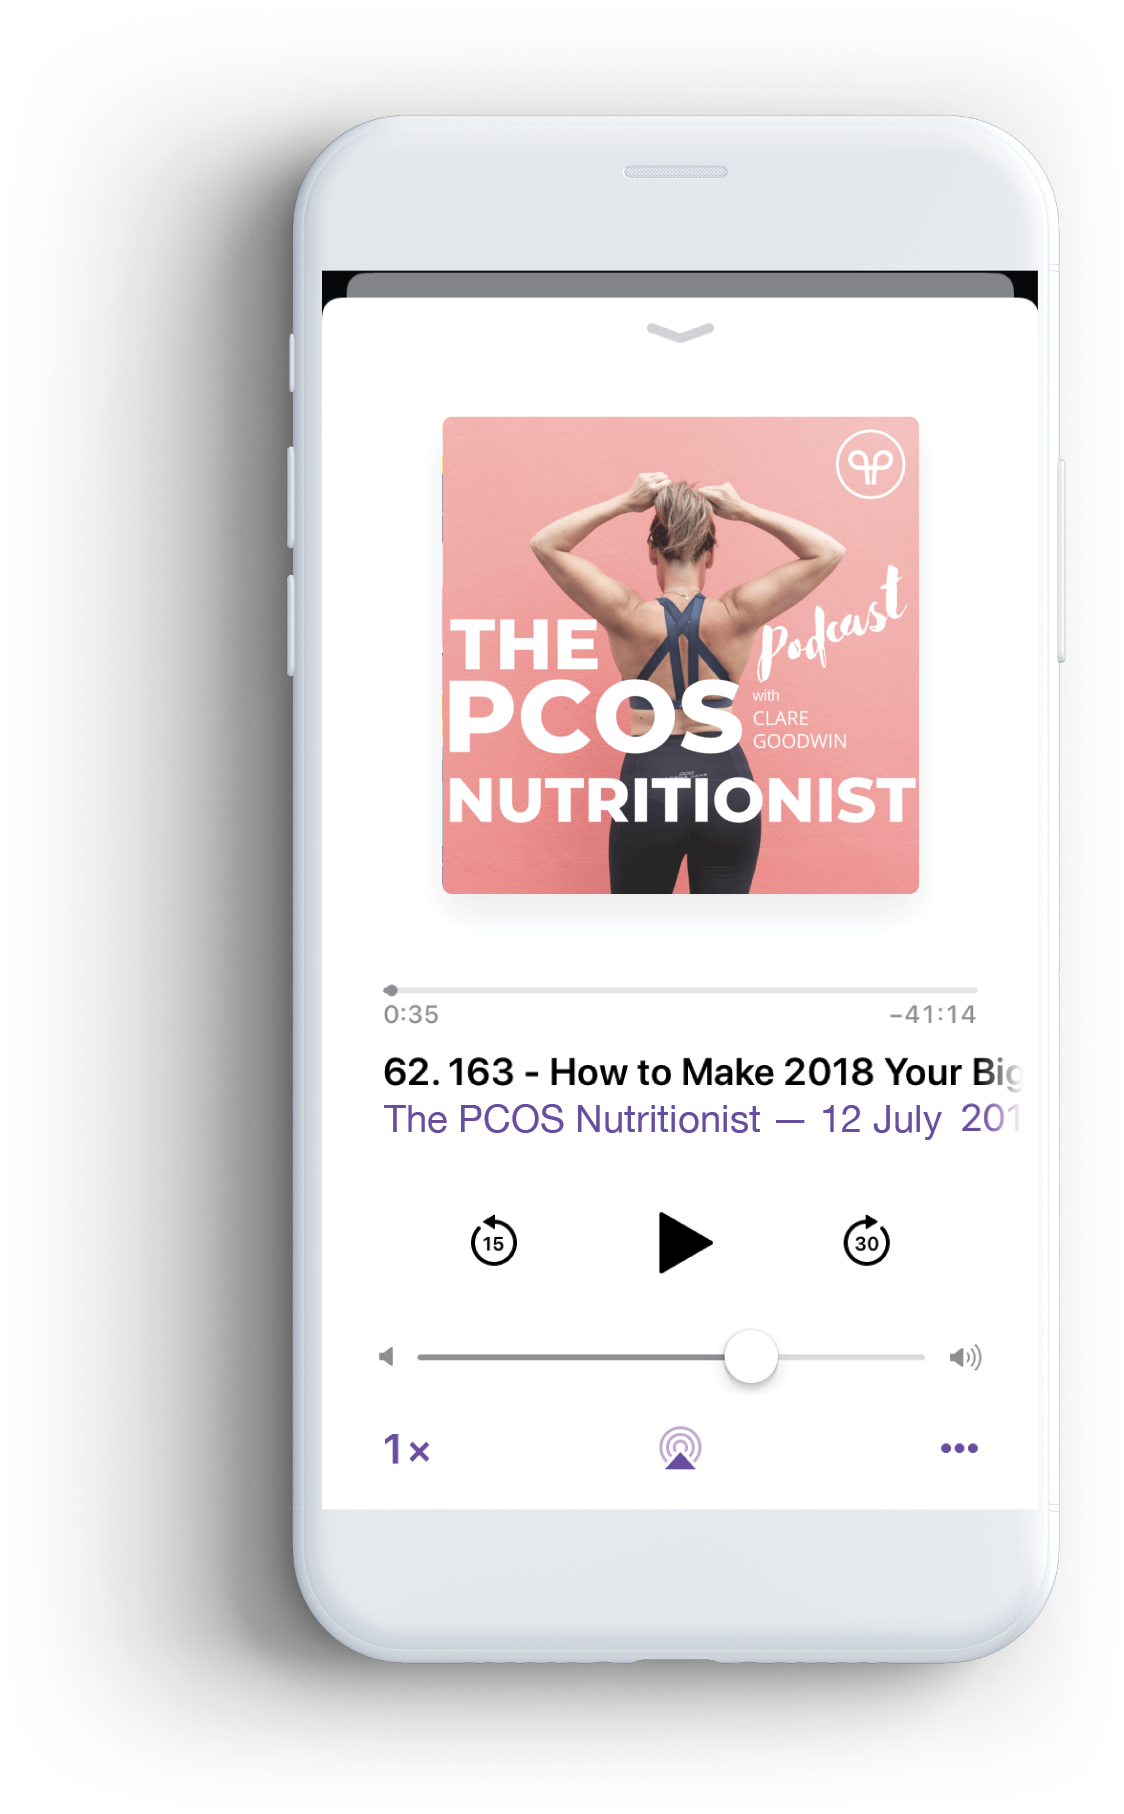 iPhone with The PCOS Nutritionist podcast on the screen